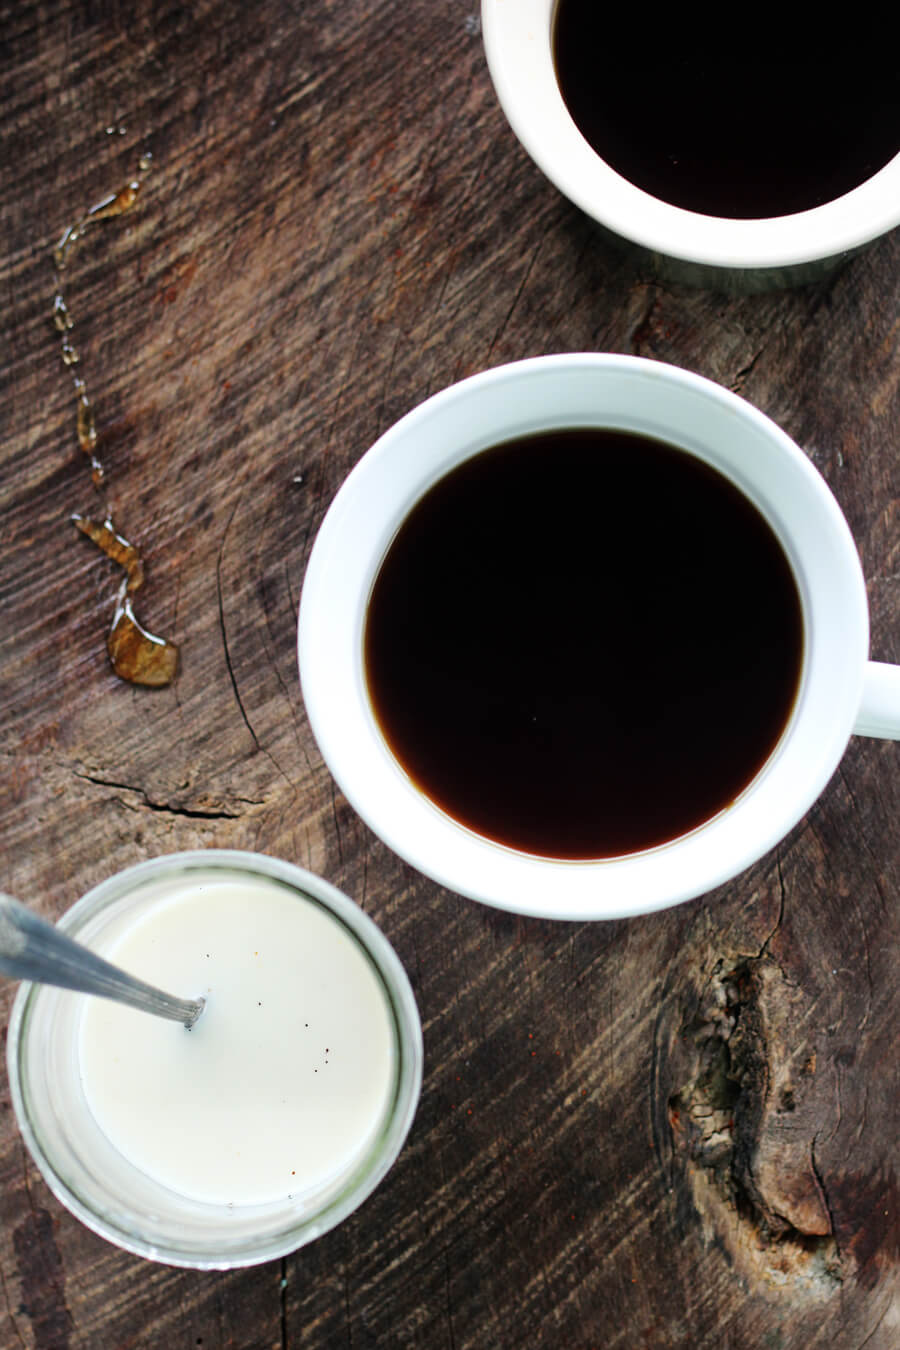 An overhead shot of two cups of coffee on a wooden board, next to a jar of milk and honey drizzle